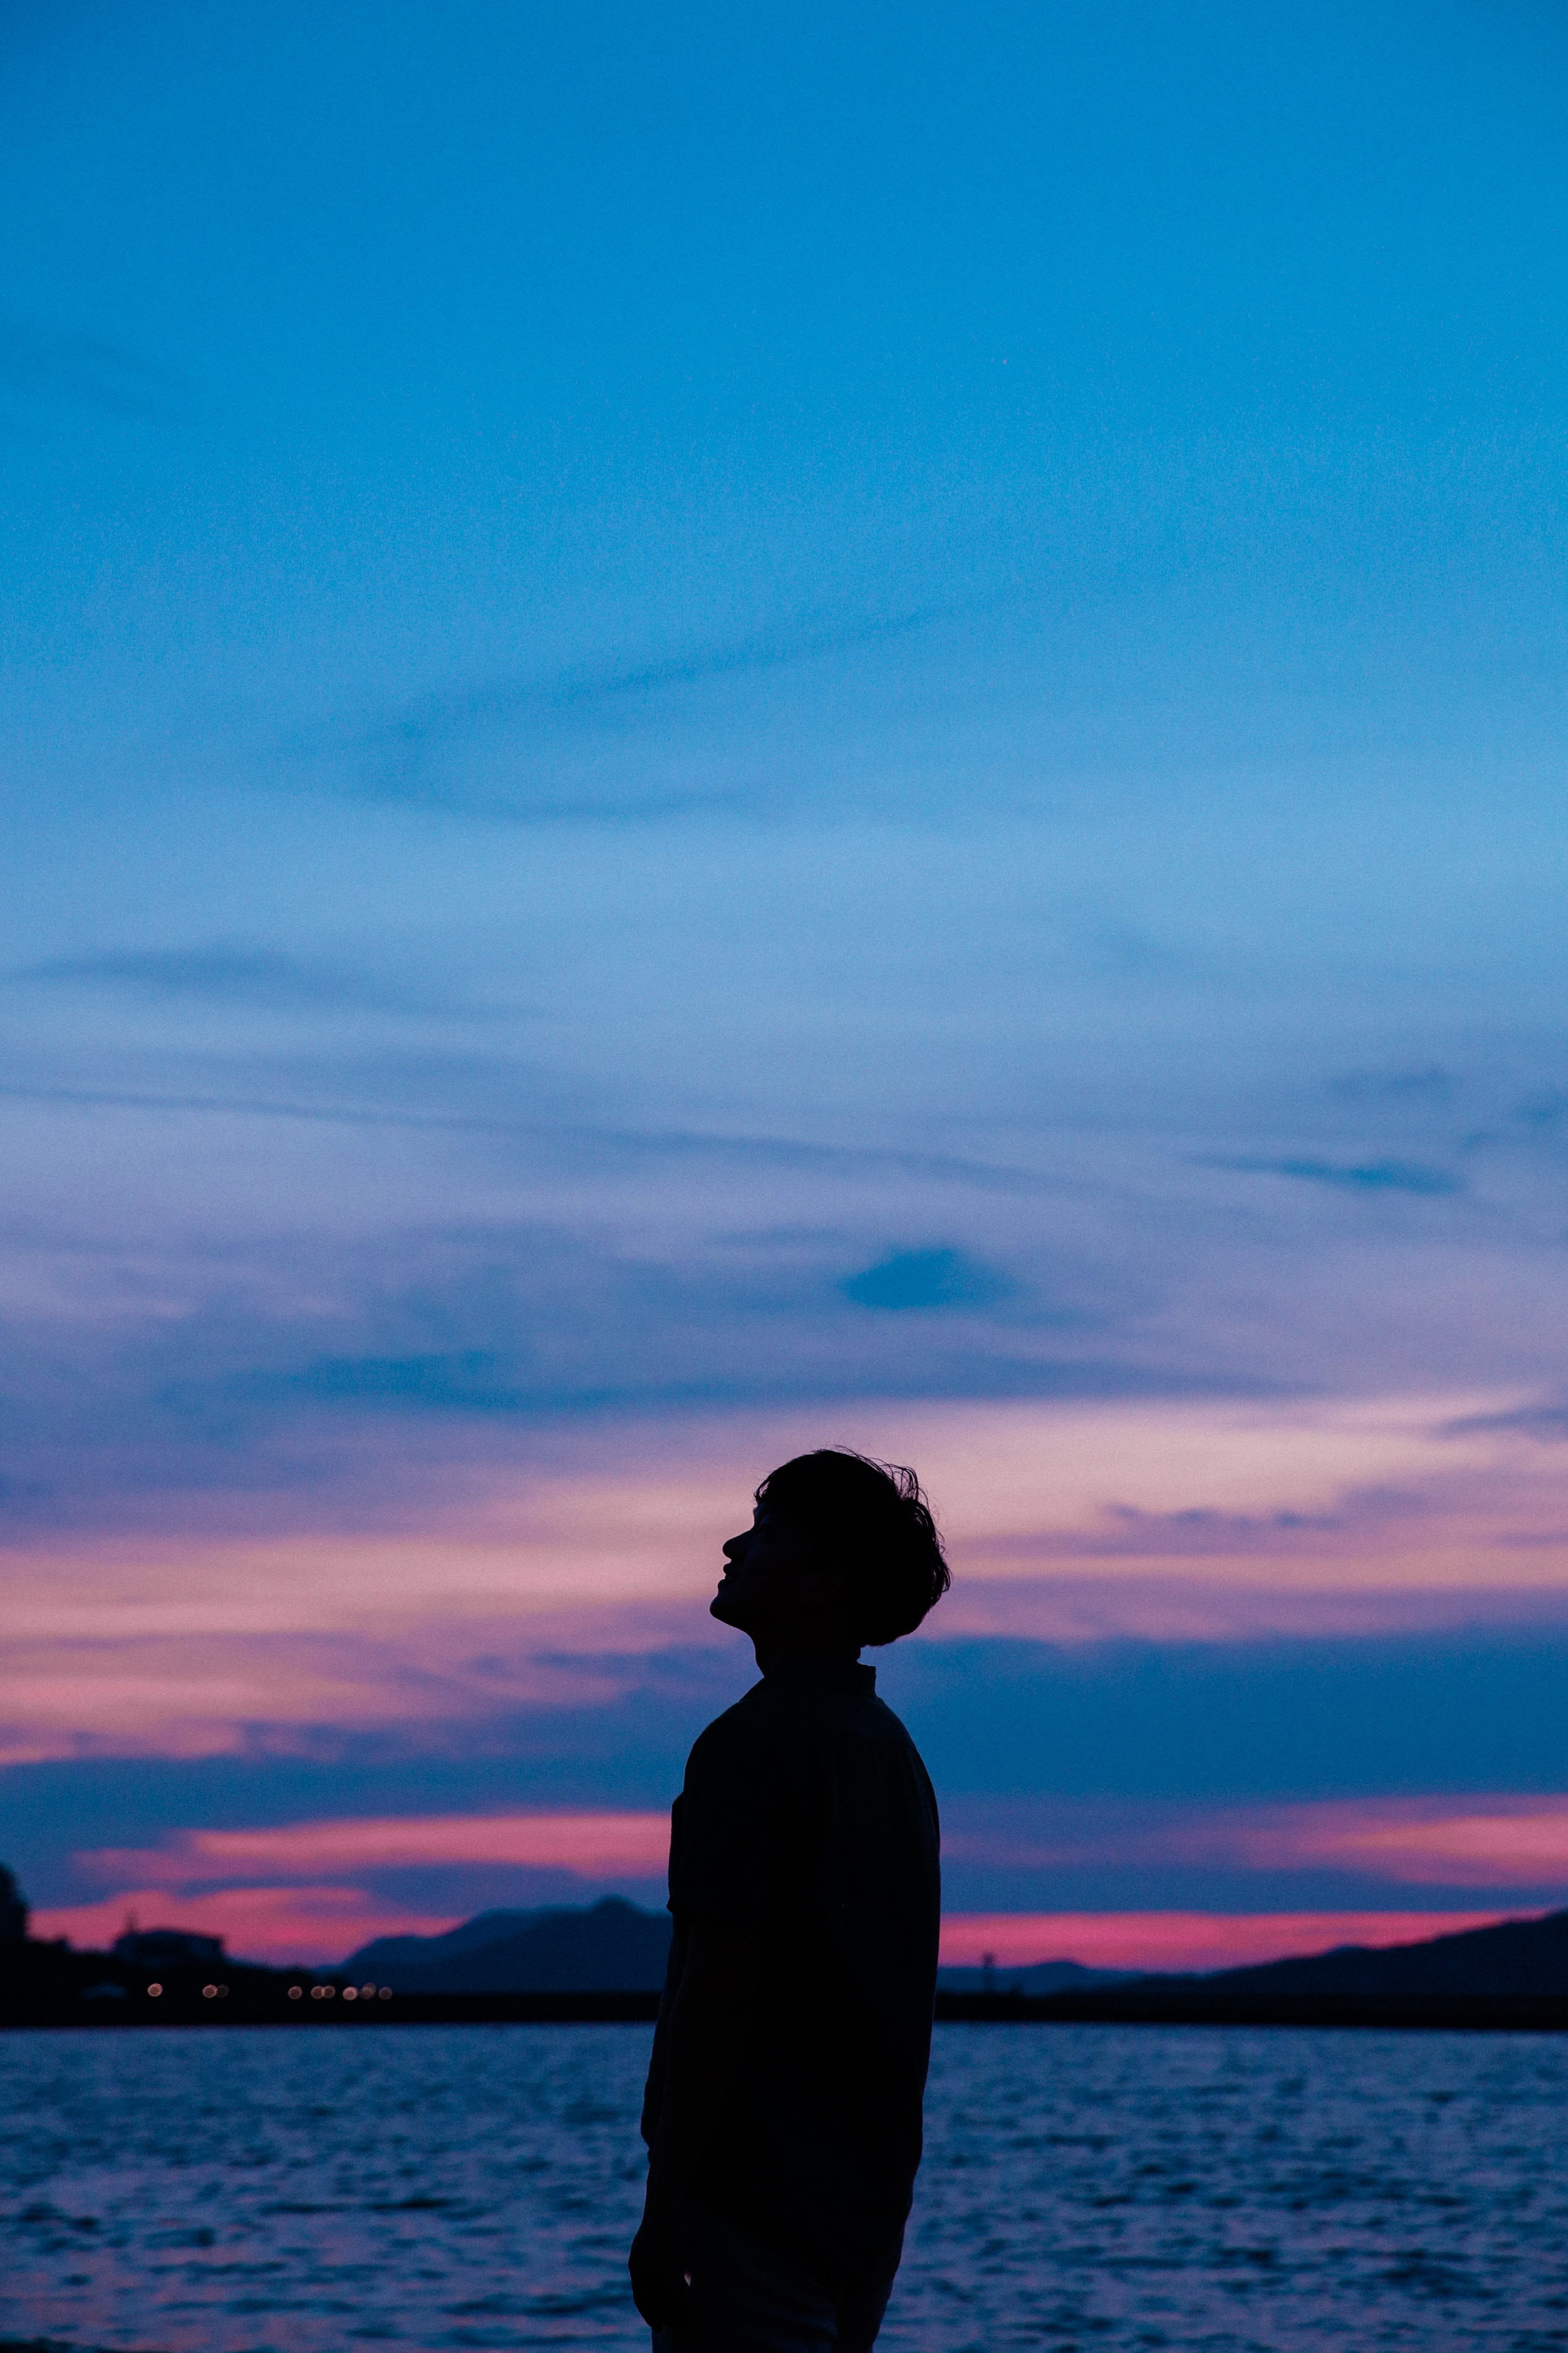 97832 download wallpaper Dark, Guy, Silhouette, Sunset, Sky, Sea screensavers and pictures for free